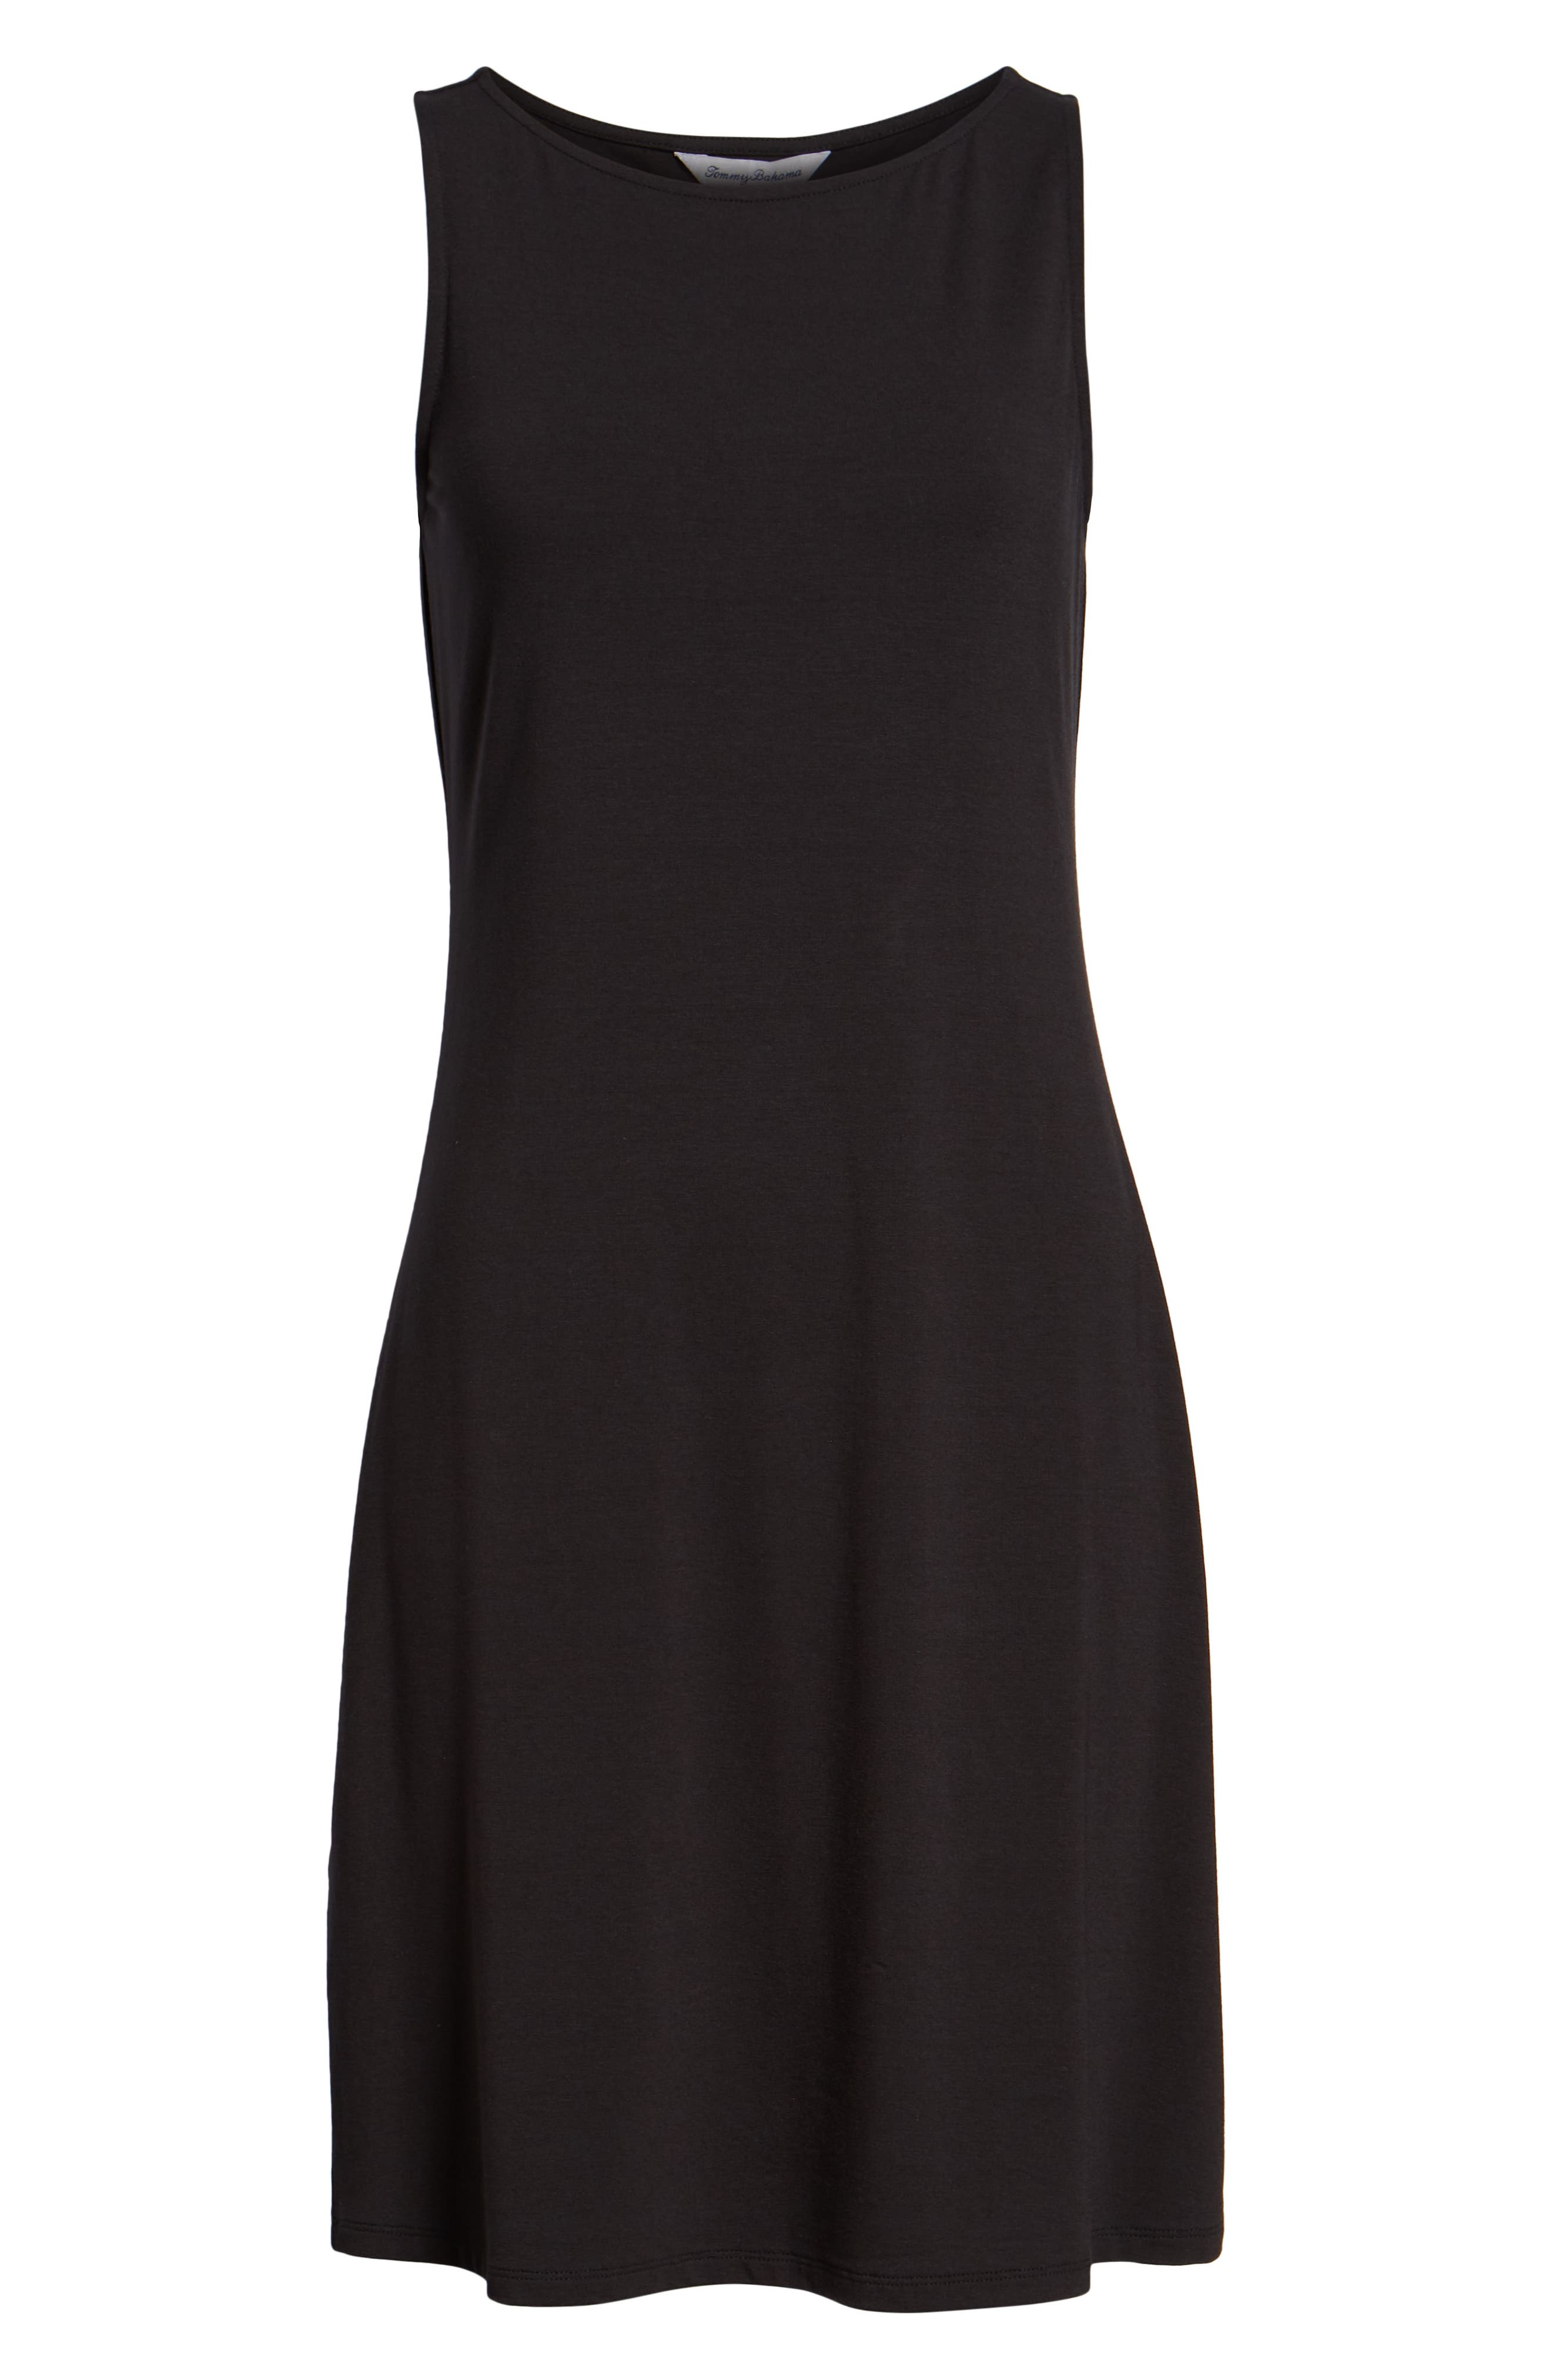 Tambour Shift Dress,                             Alternate thumbnail 6, color,                             BLACK